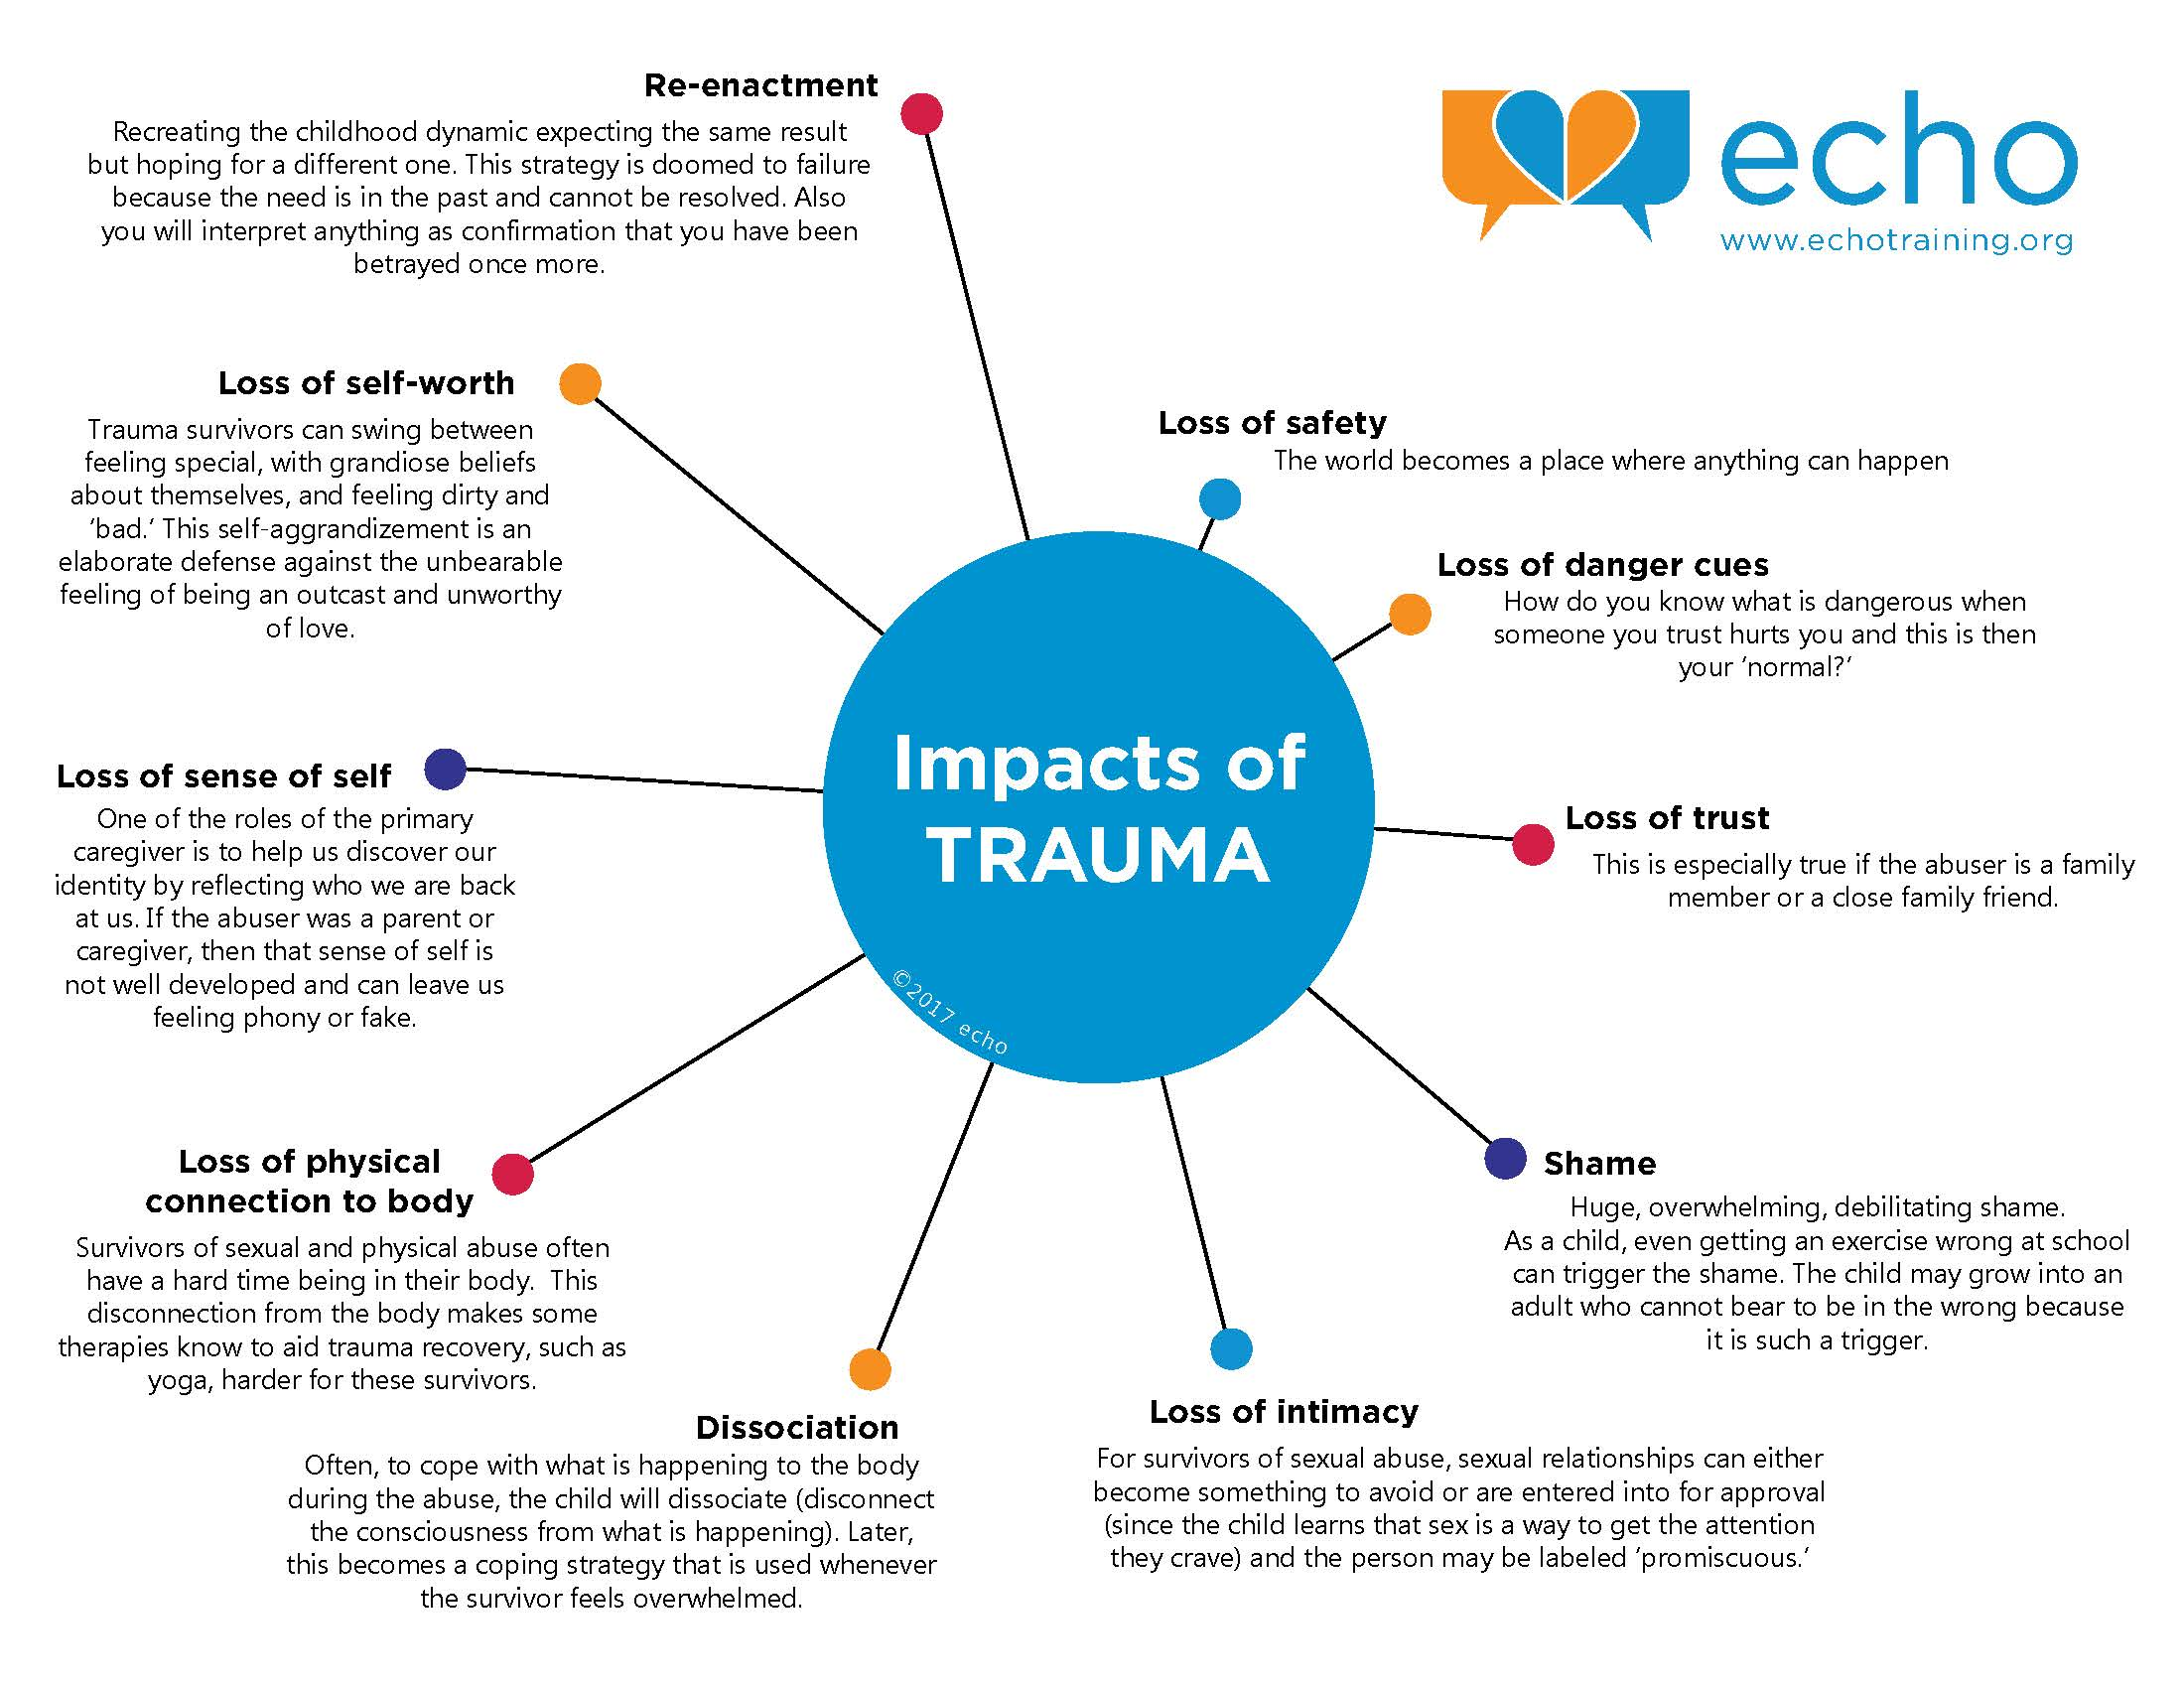 the impact of trauma echo